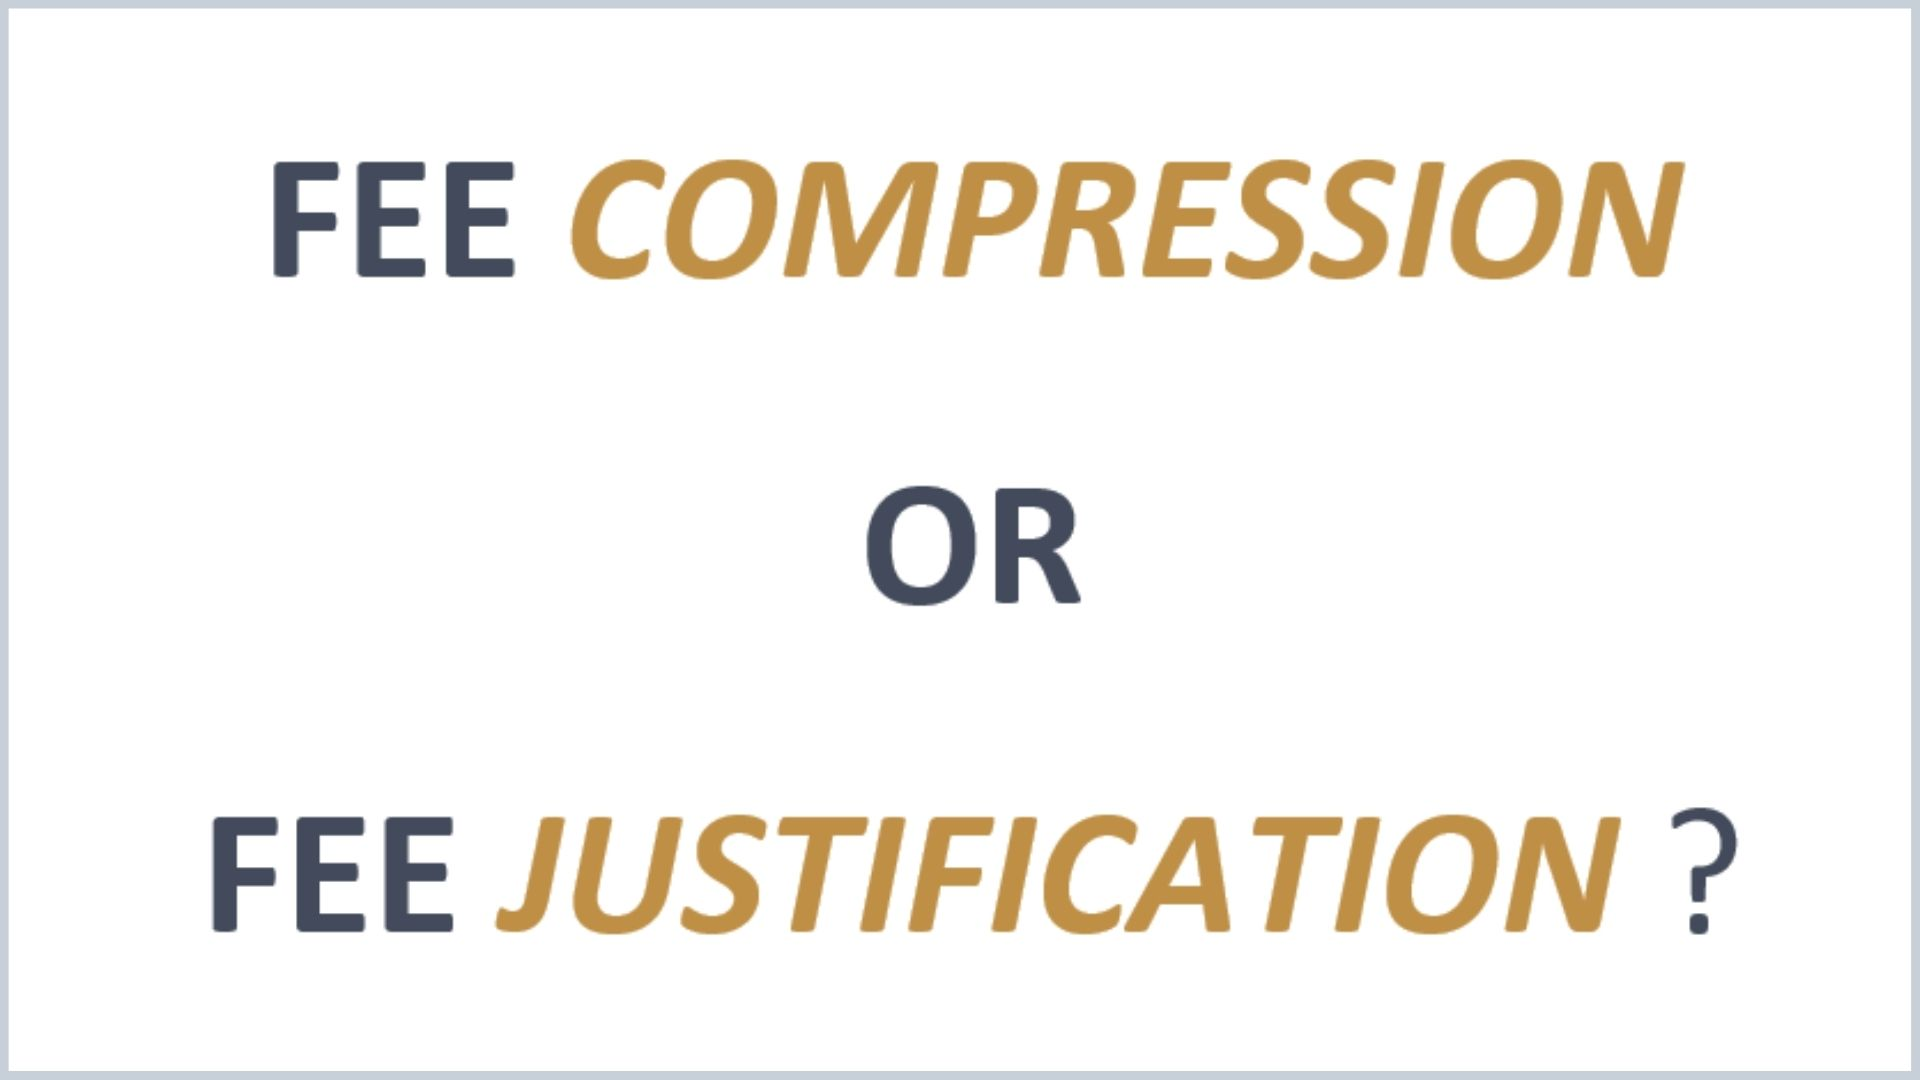 """Fee """"Compression"""" or  Fee """"Justification?"""""""